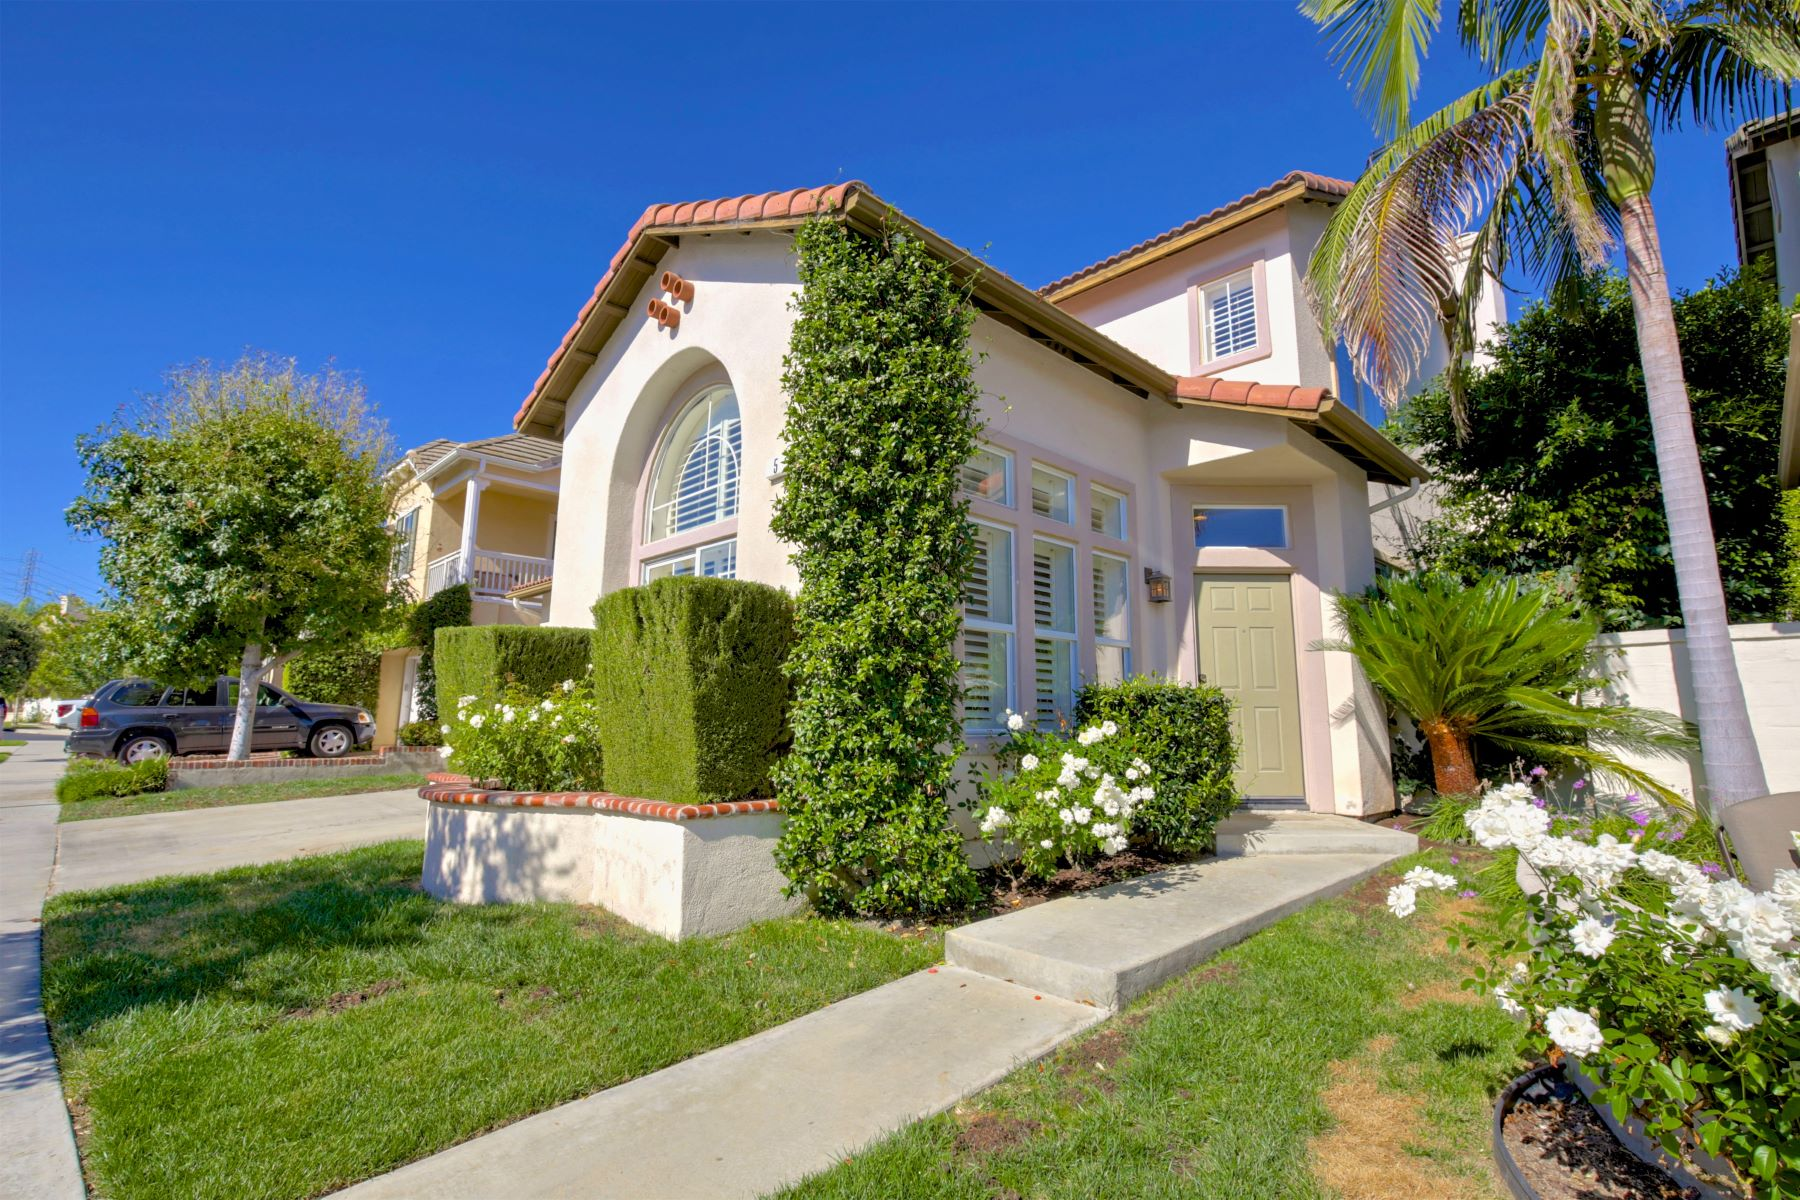 Single Family Homes for Sale at 5 Calle Boveda San Clemente, California 92673 United States